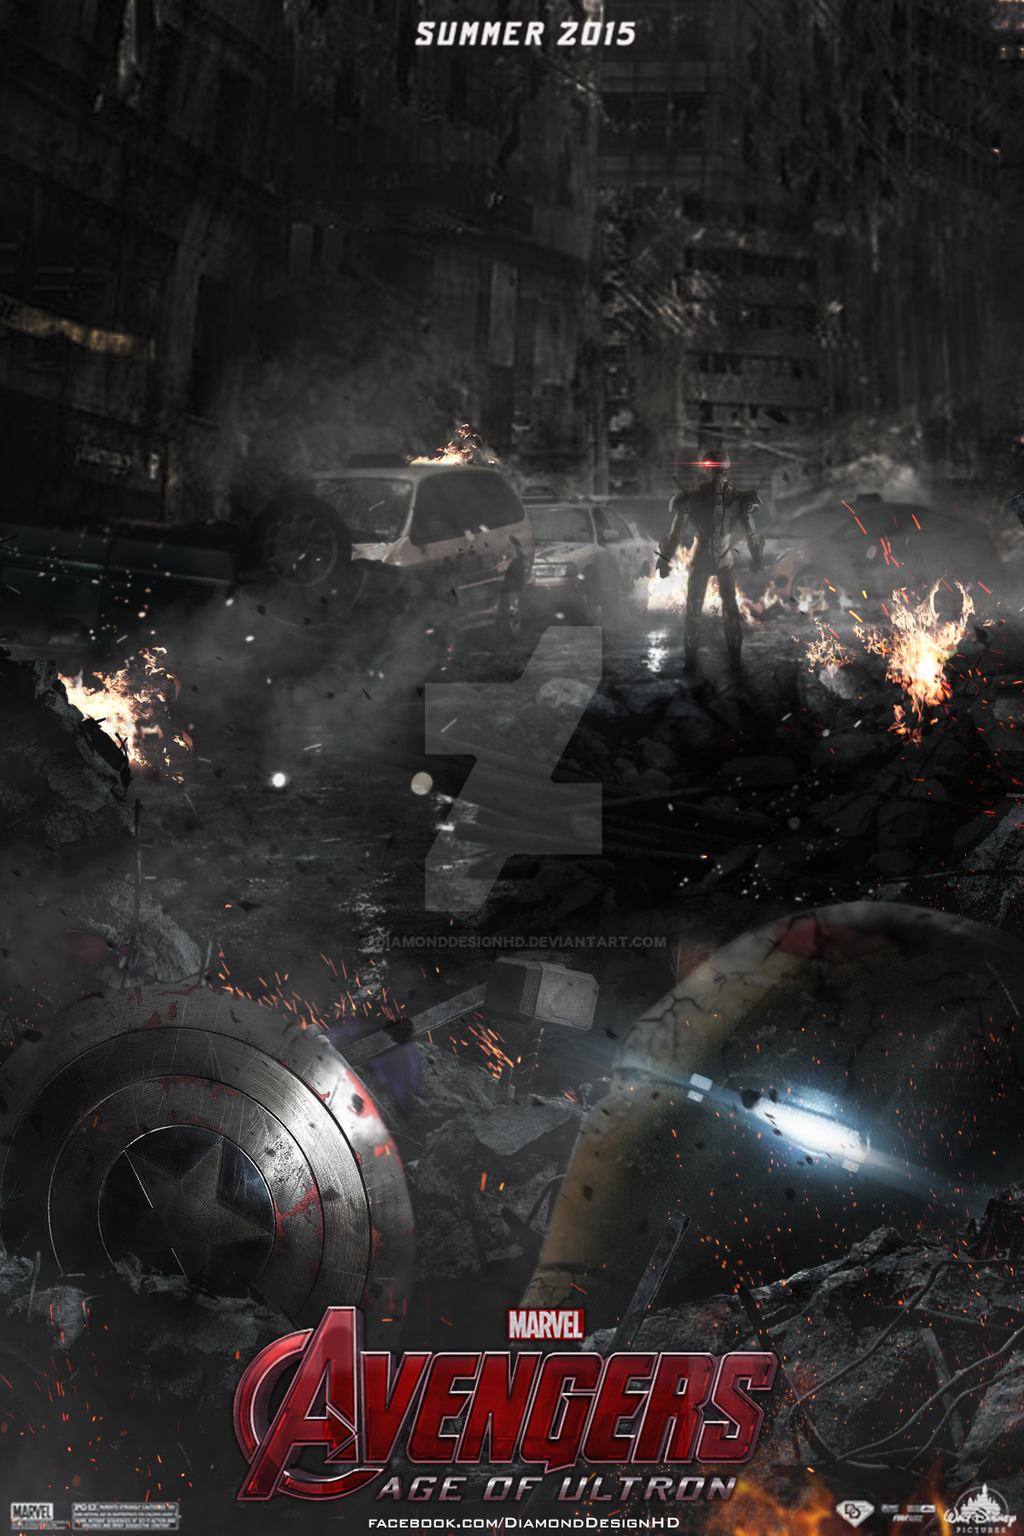 Avengers Age Of Ultron By Iloegbunam On Deviantart: Avengers: Age Of Ultron (FAN MADE) Teaser Poster By